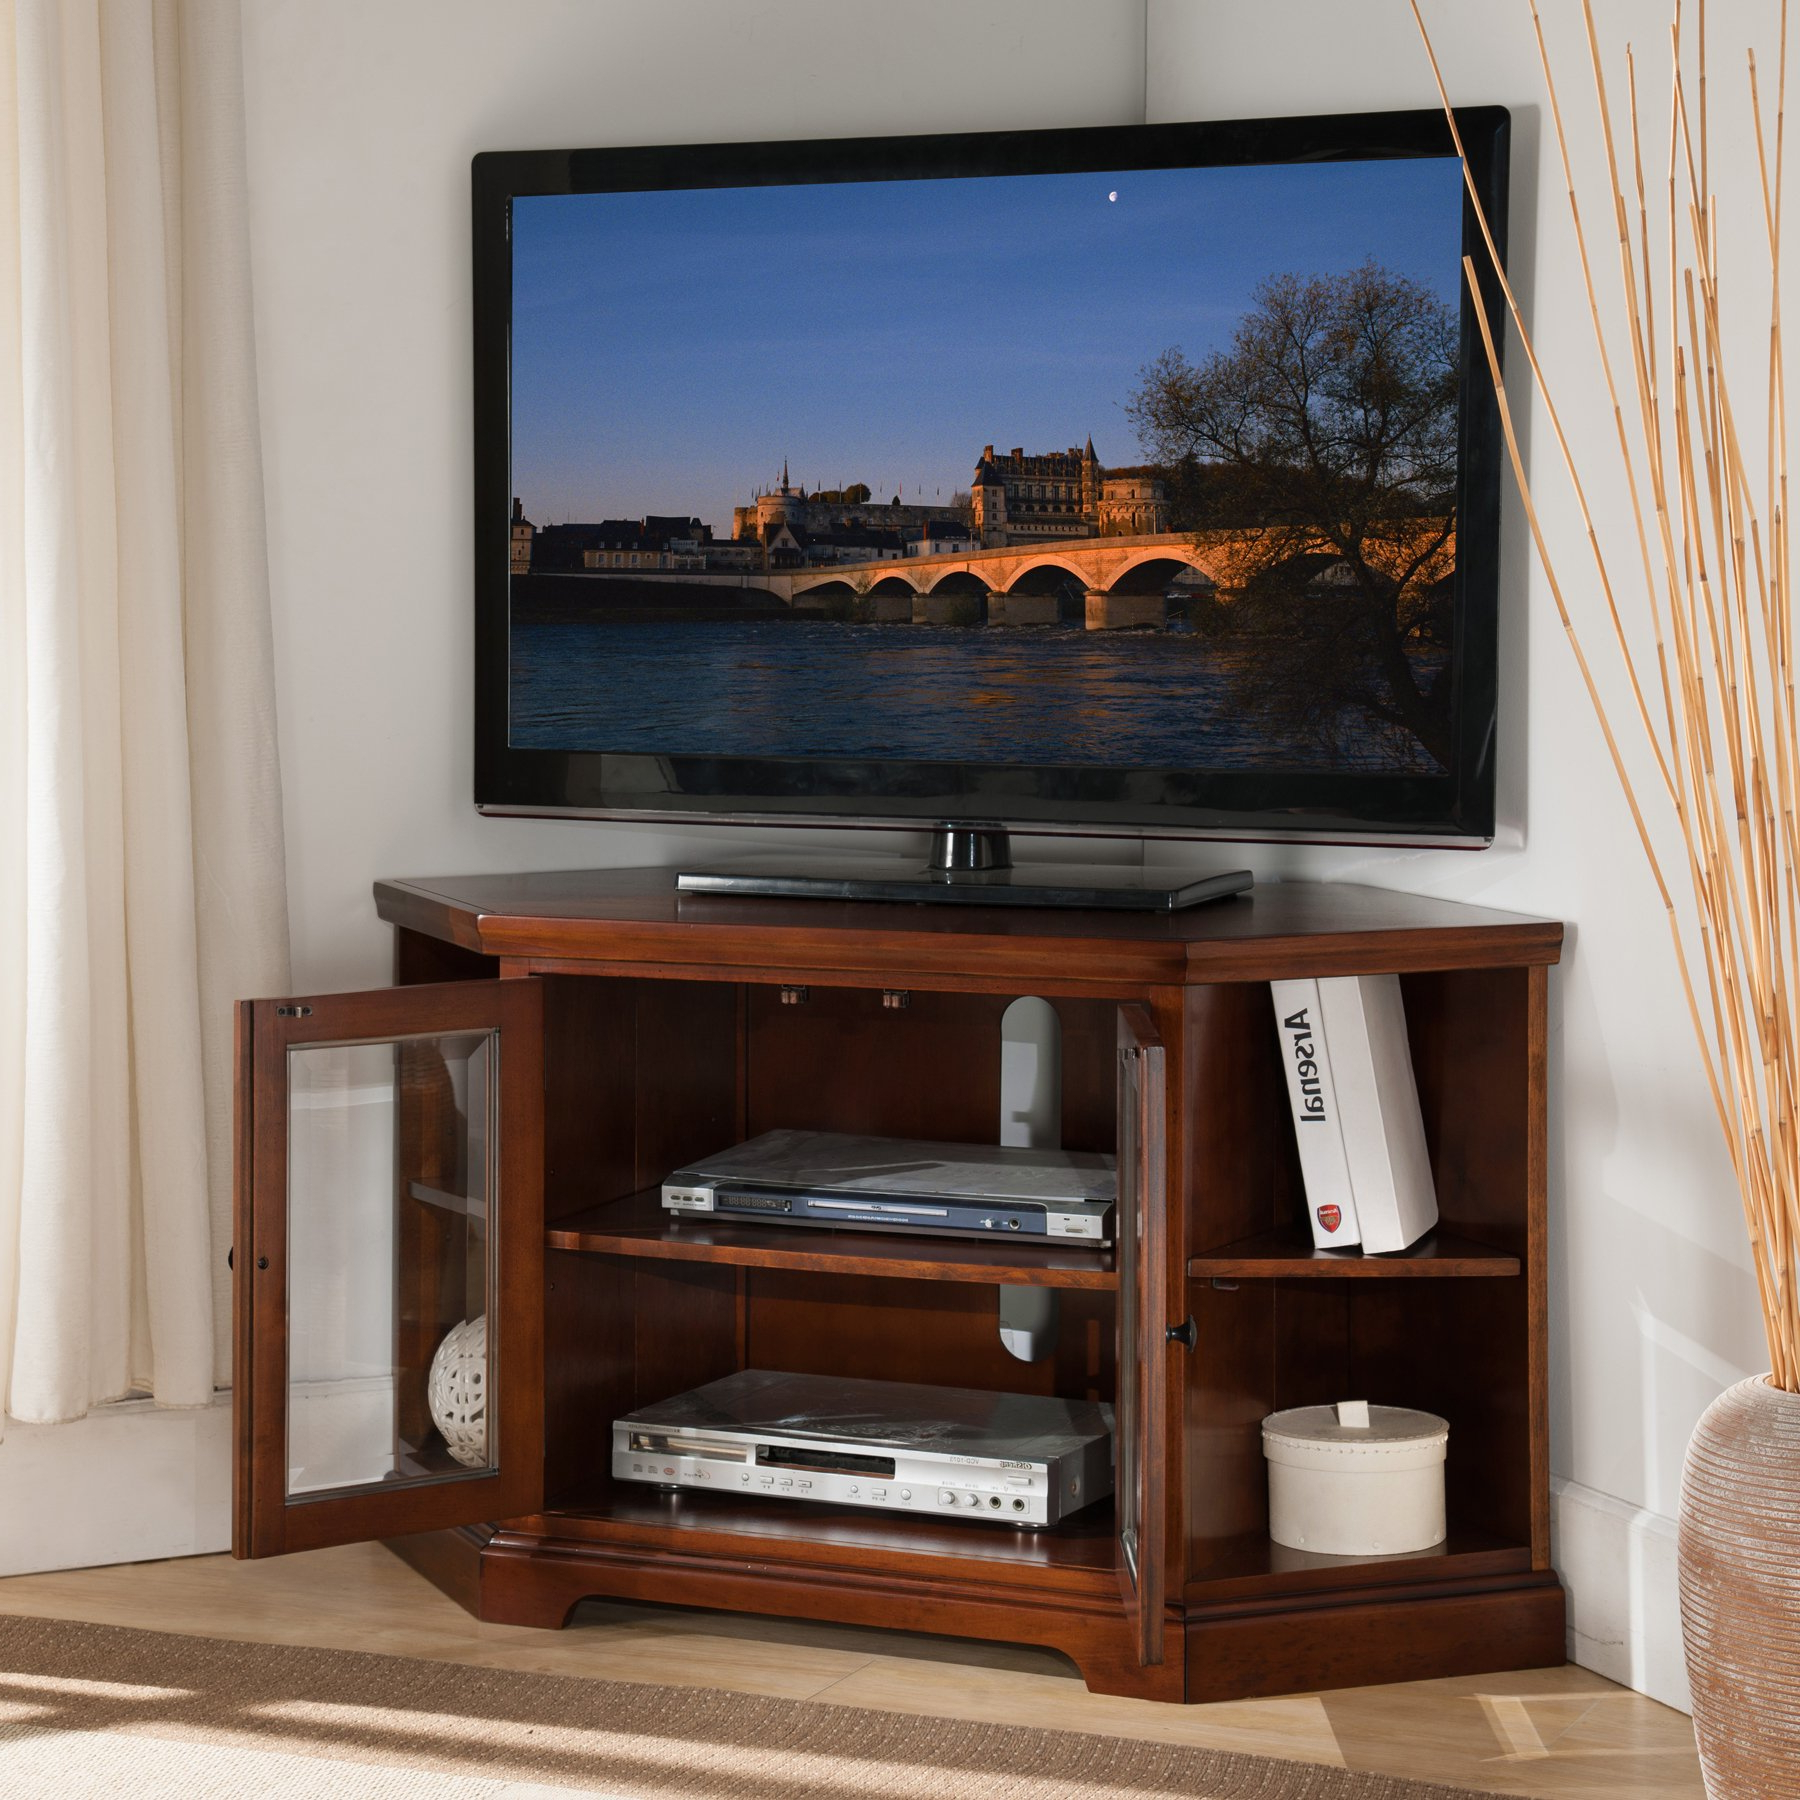 Tv Stands With Bookcases Throughout Most Popular Shop Westwood Cherry 46 Inch Corner Tv Stand With Bookcases – Free (View 11 of 20)